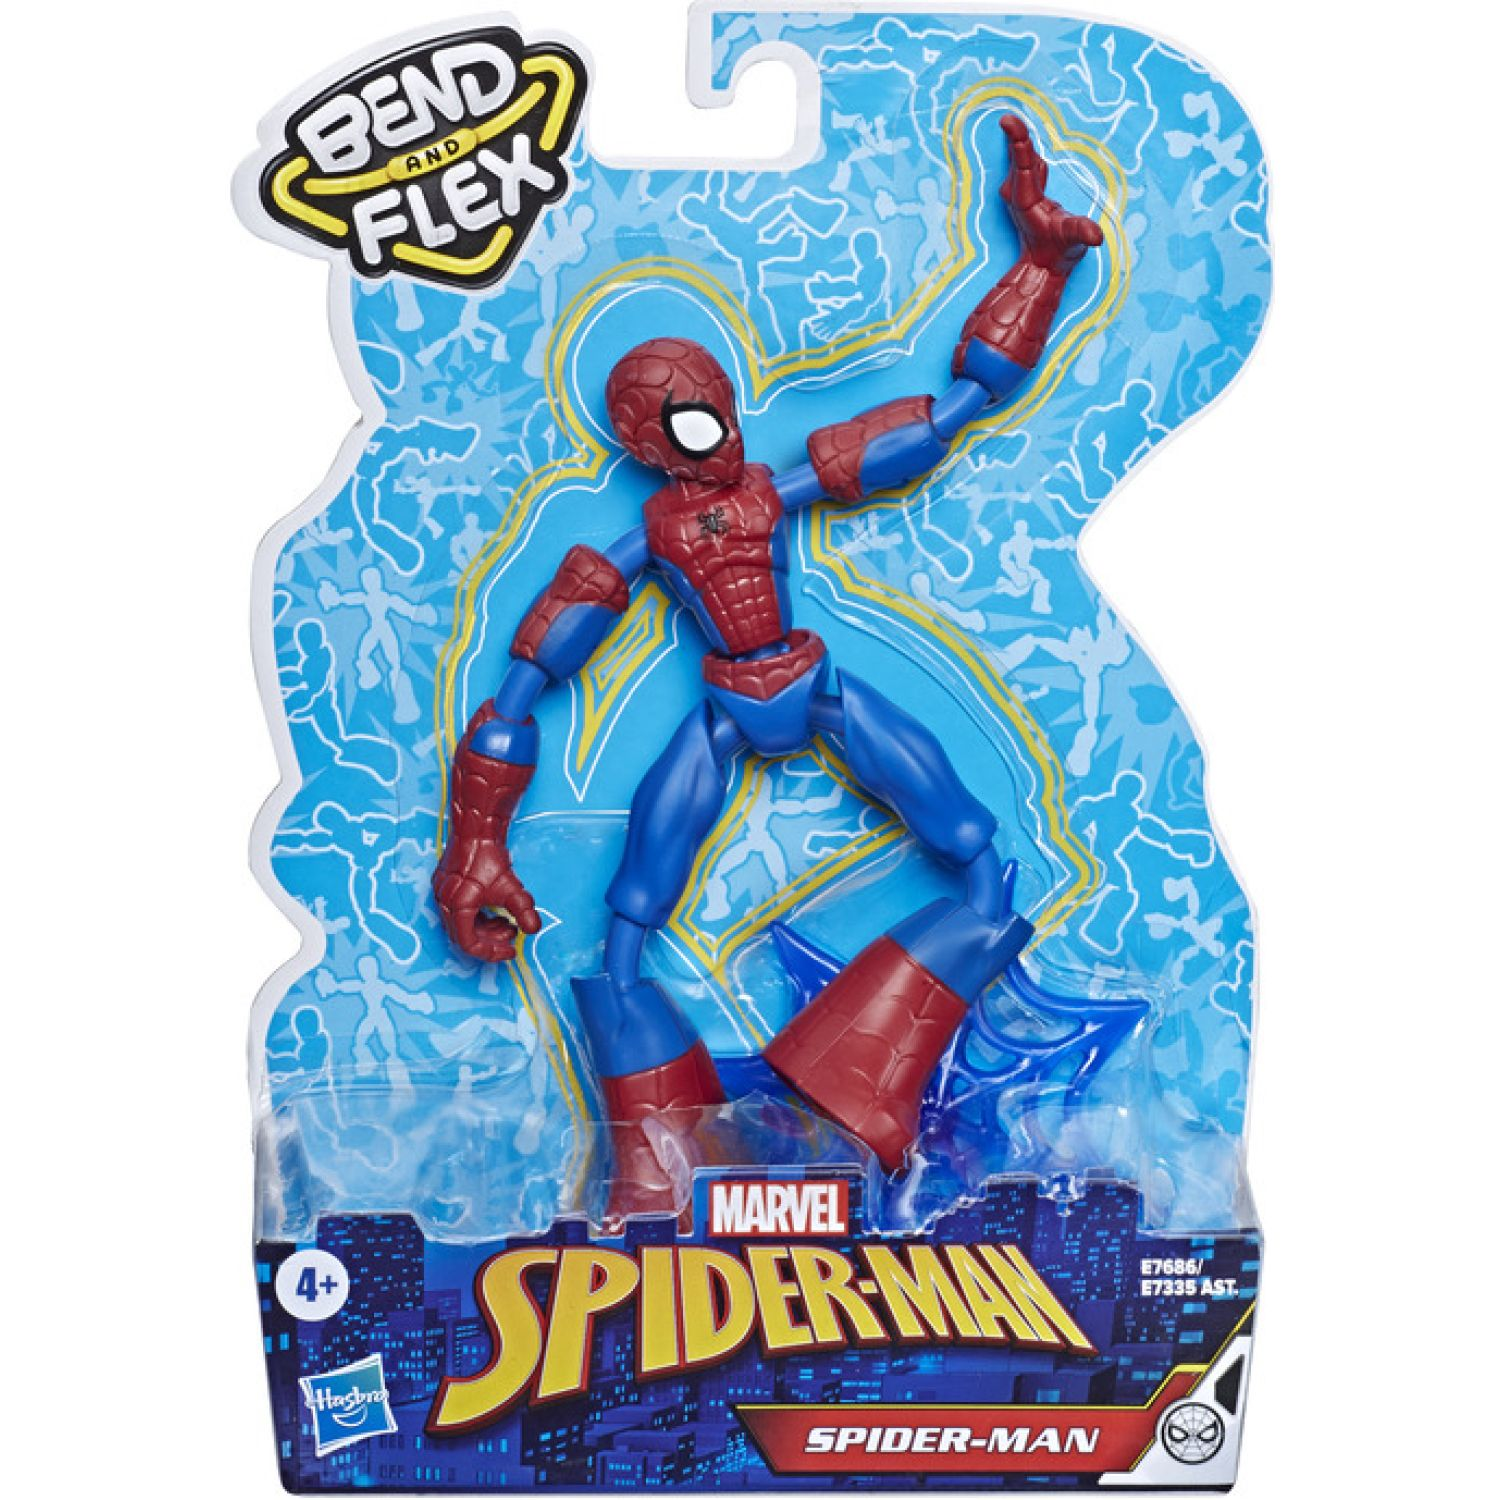 SPIDER-MAN SPD BEND AND FLEX SPIDERMAN Varios Figuras de acción